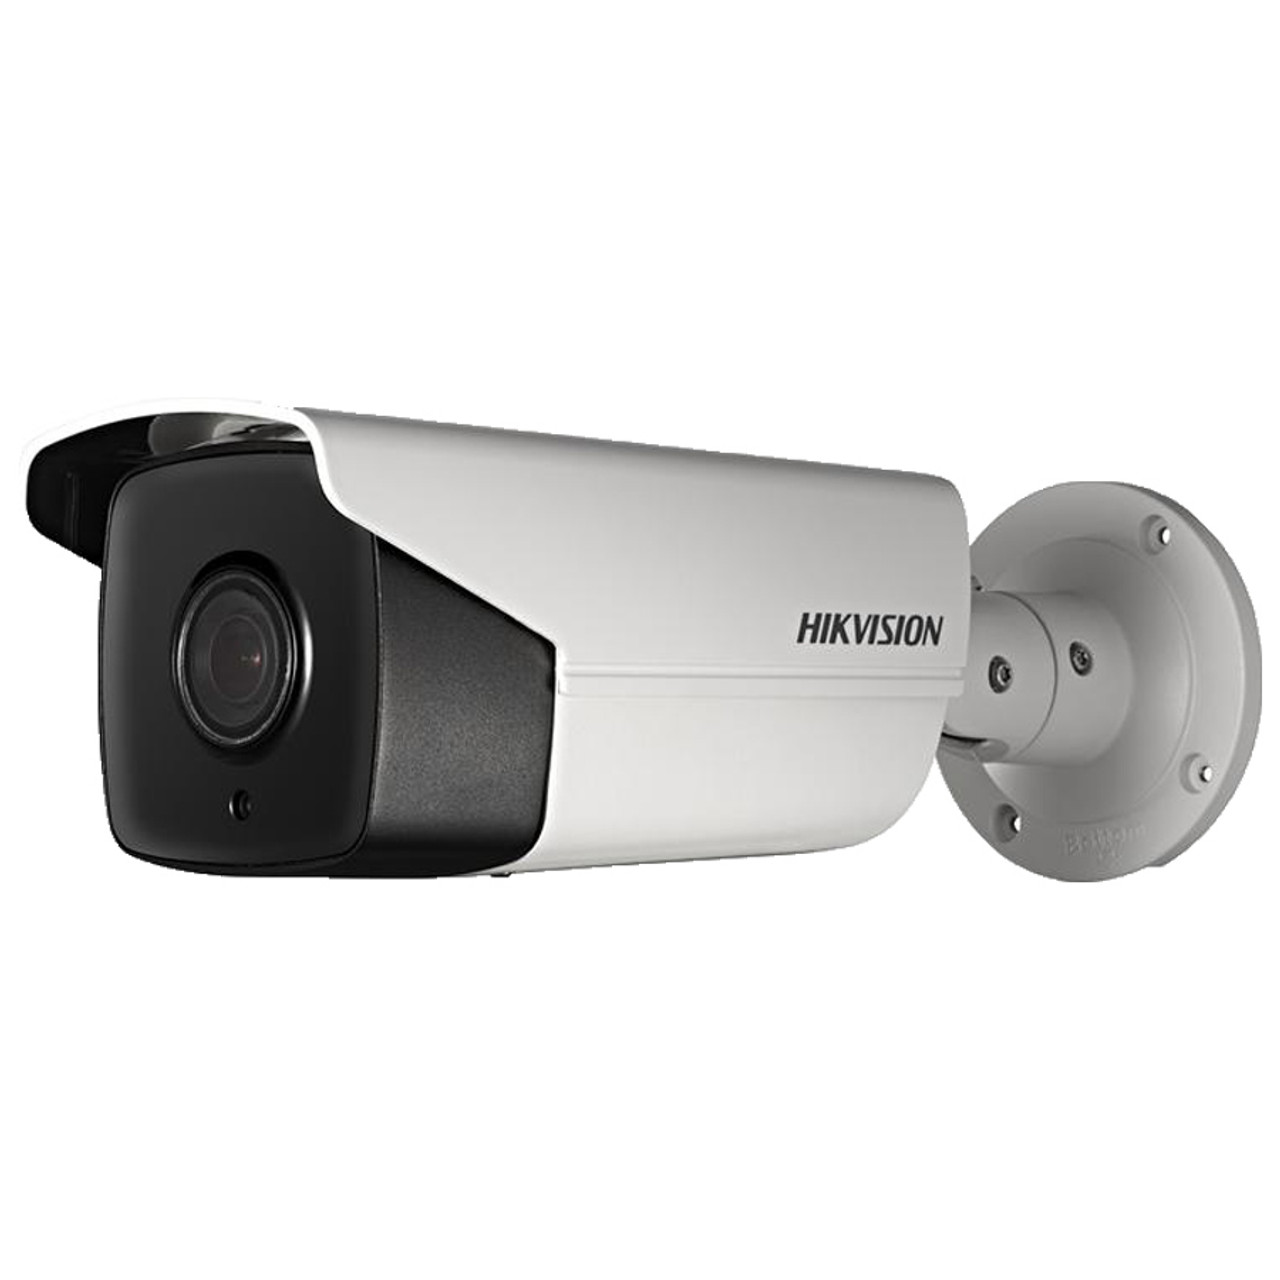 Hikvision DS-2CD4A26FWD-IZHS 2MP IR Bullet IP Security Camera